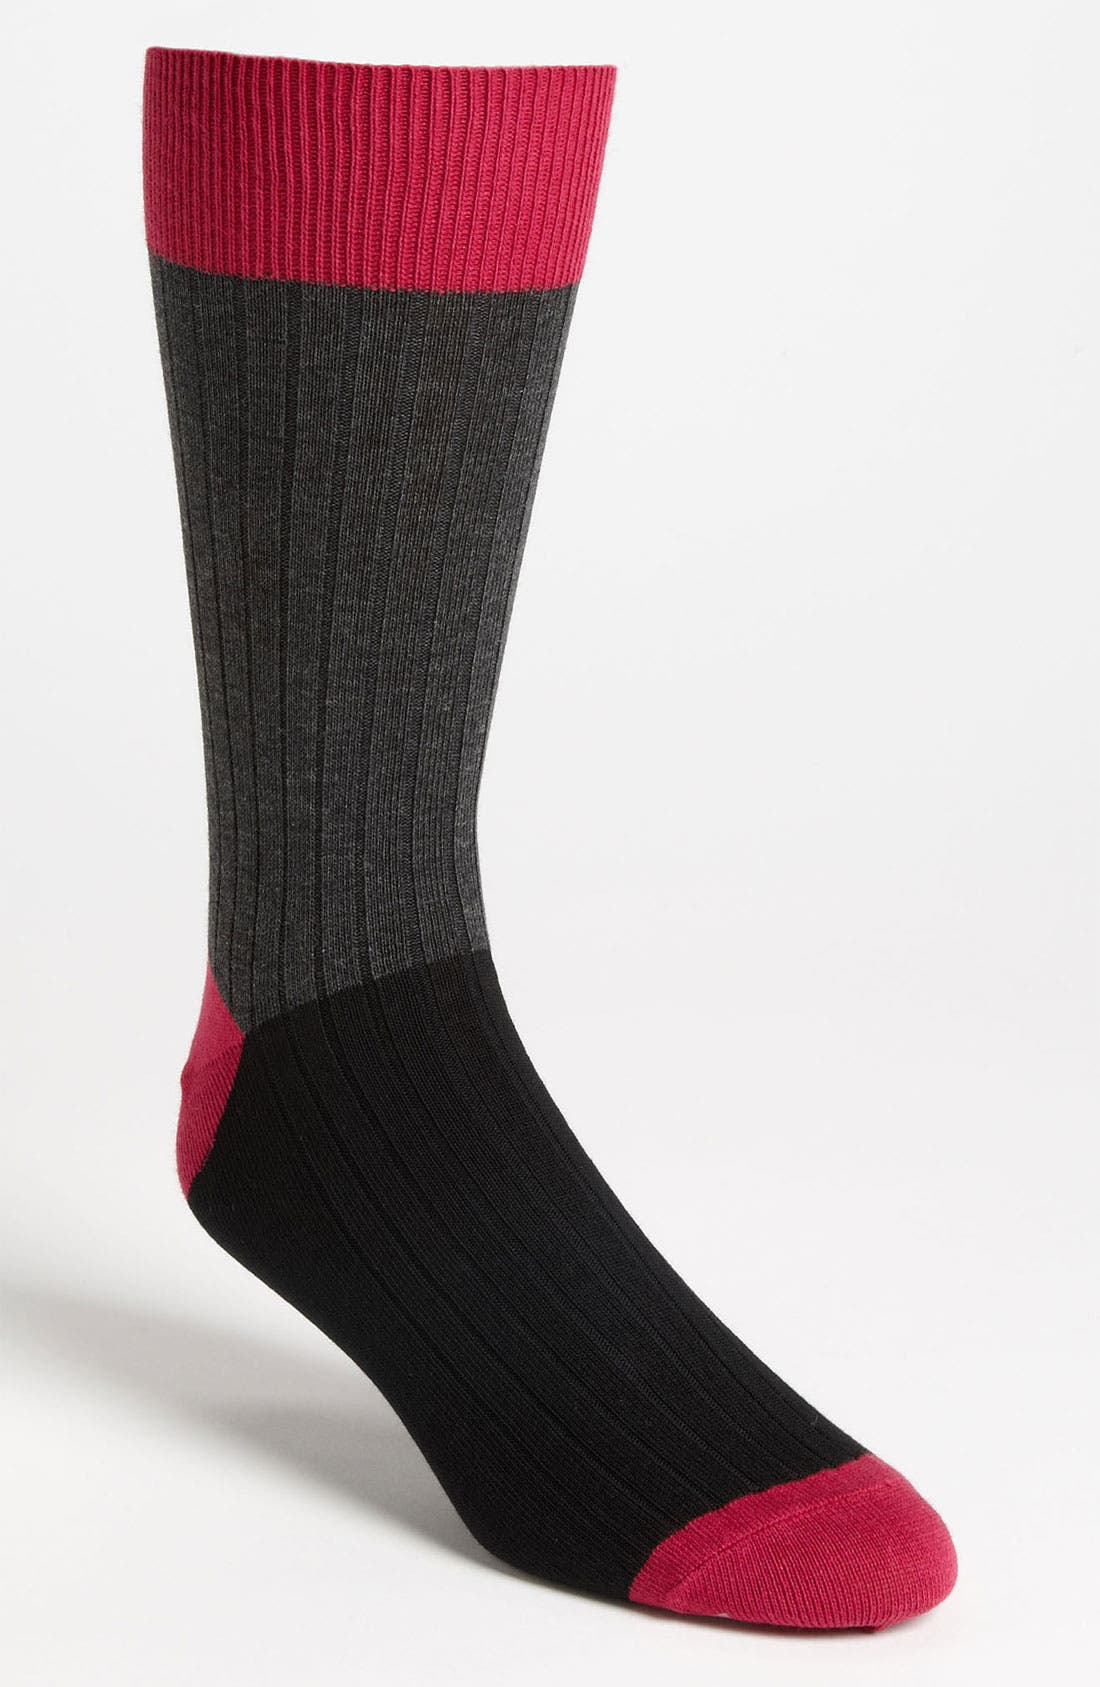 Alternate Image 1 Selected - Cole Haan 'Work to Play' Socks